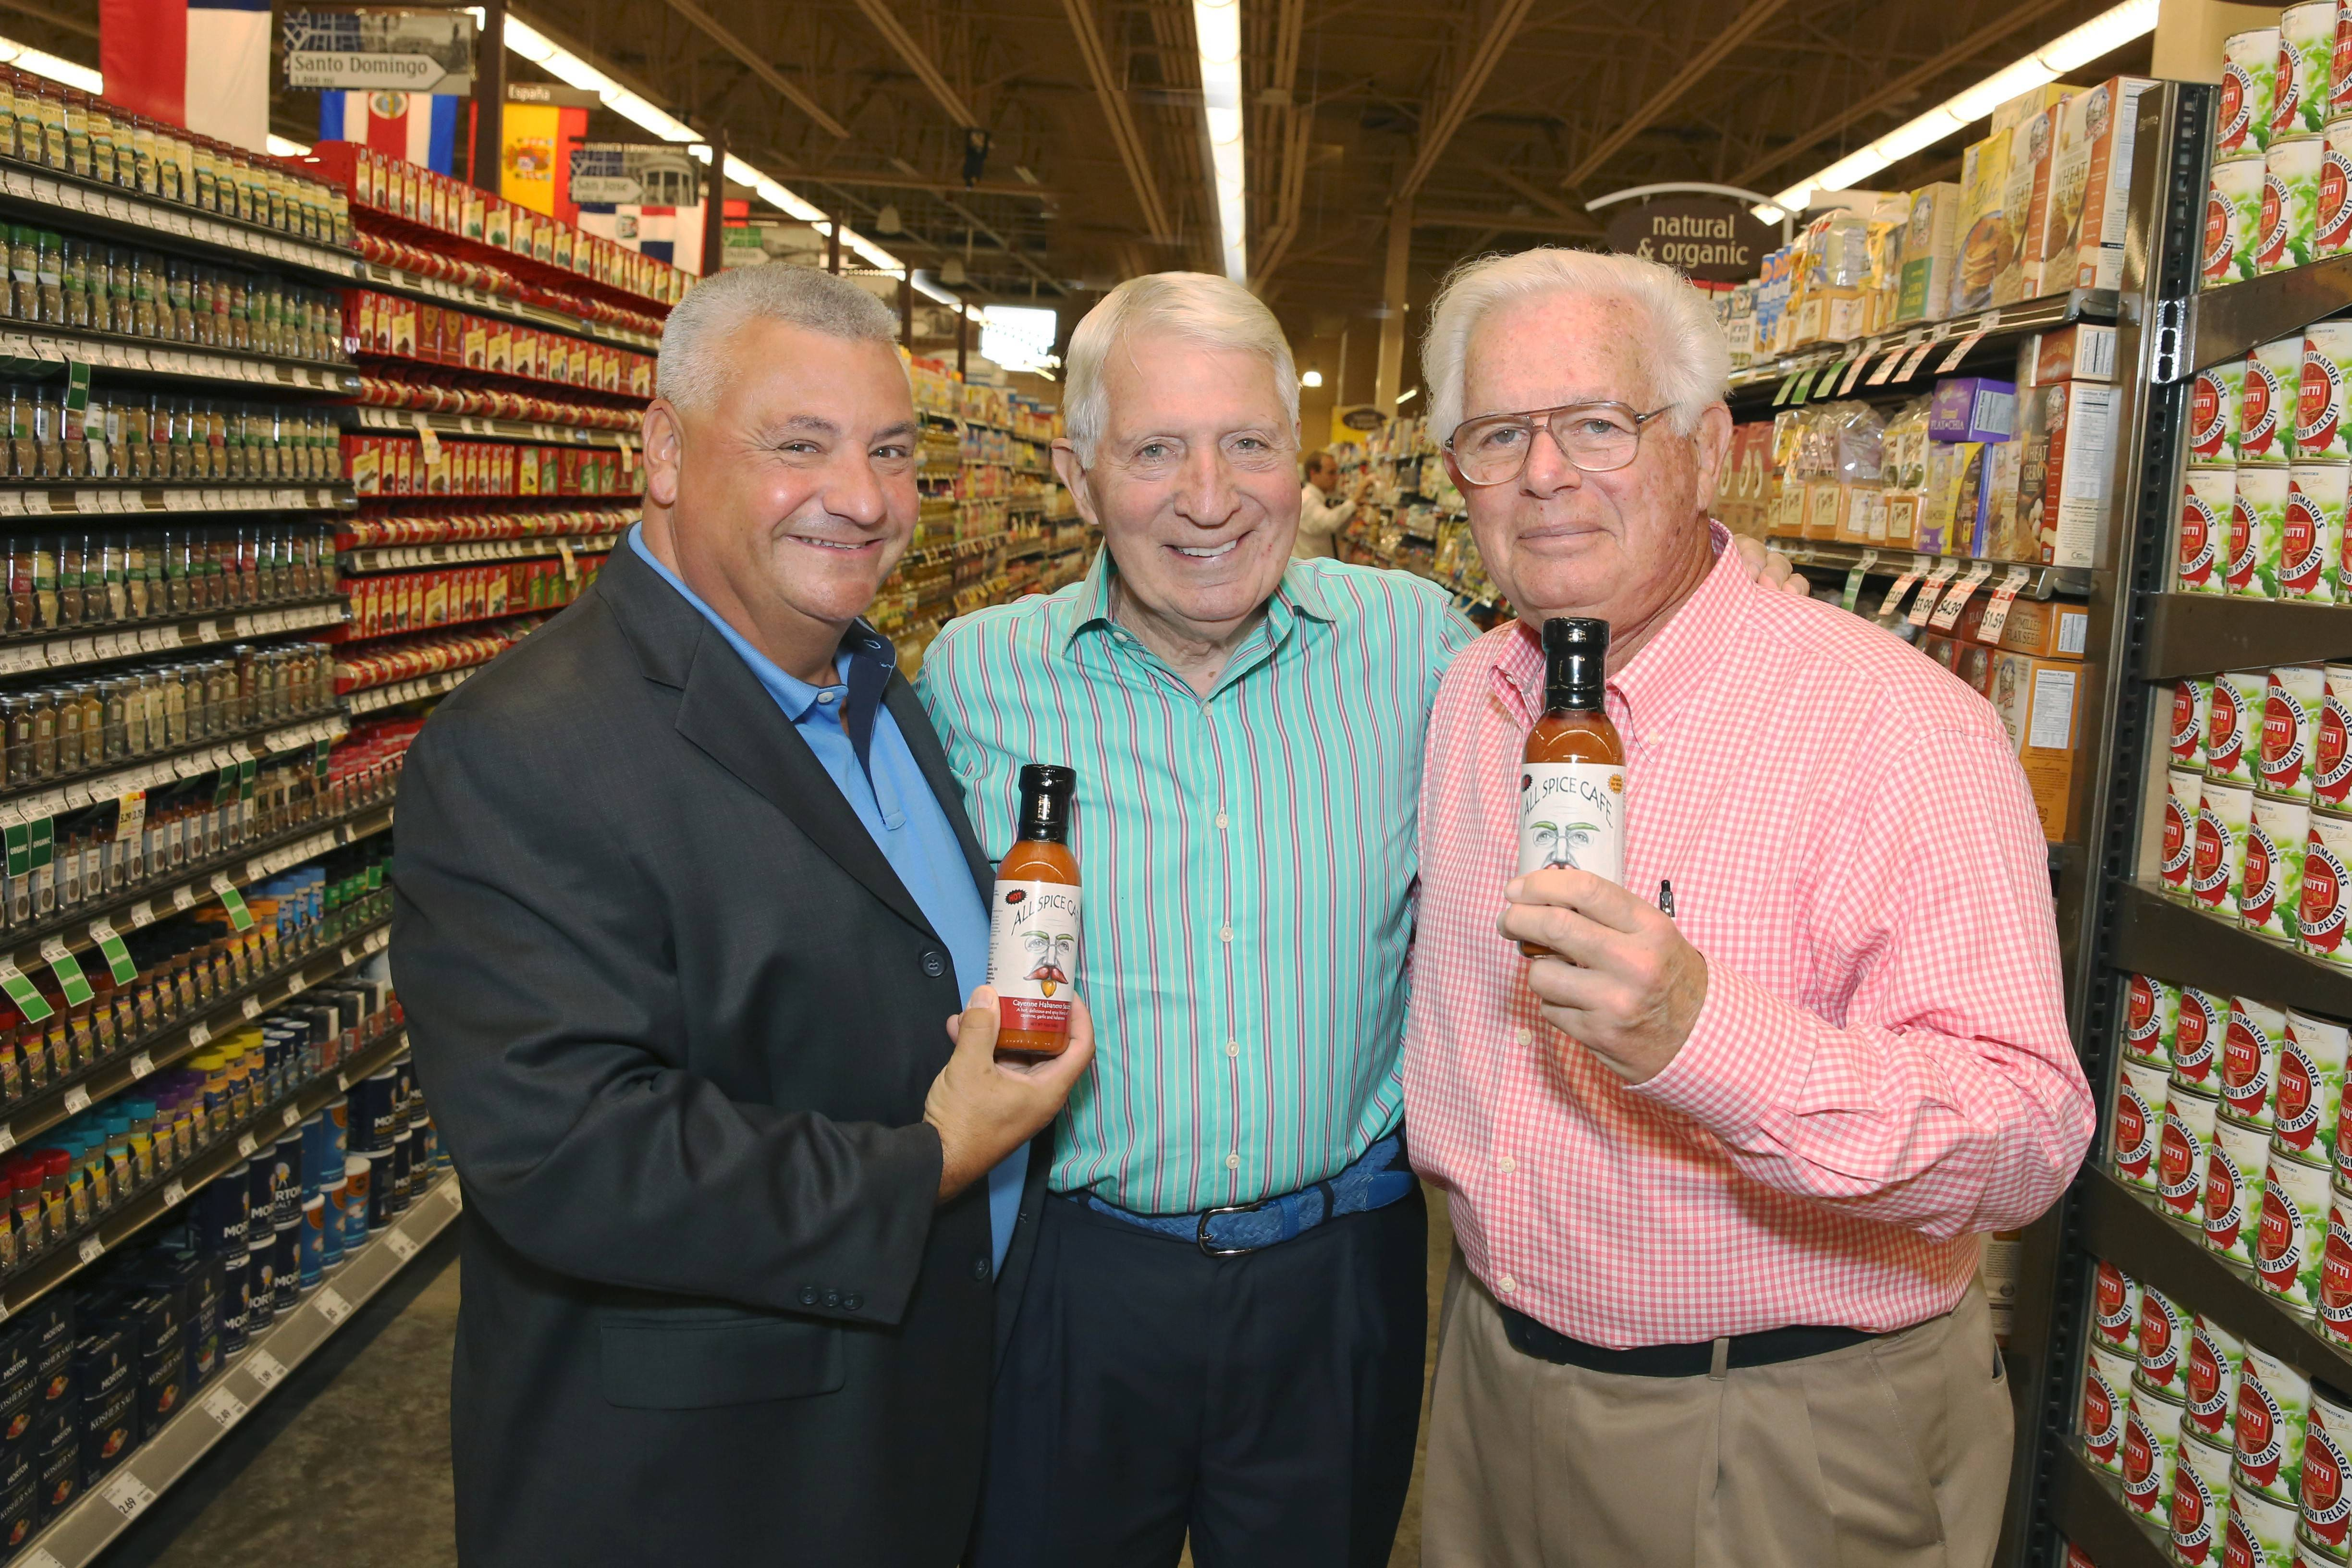 Michael Brindza, at left, Don Mazzoni and Buddy Feldman are backing a line of hot sauces called All Spice Cafe.